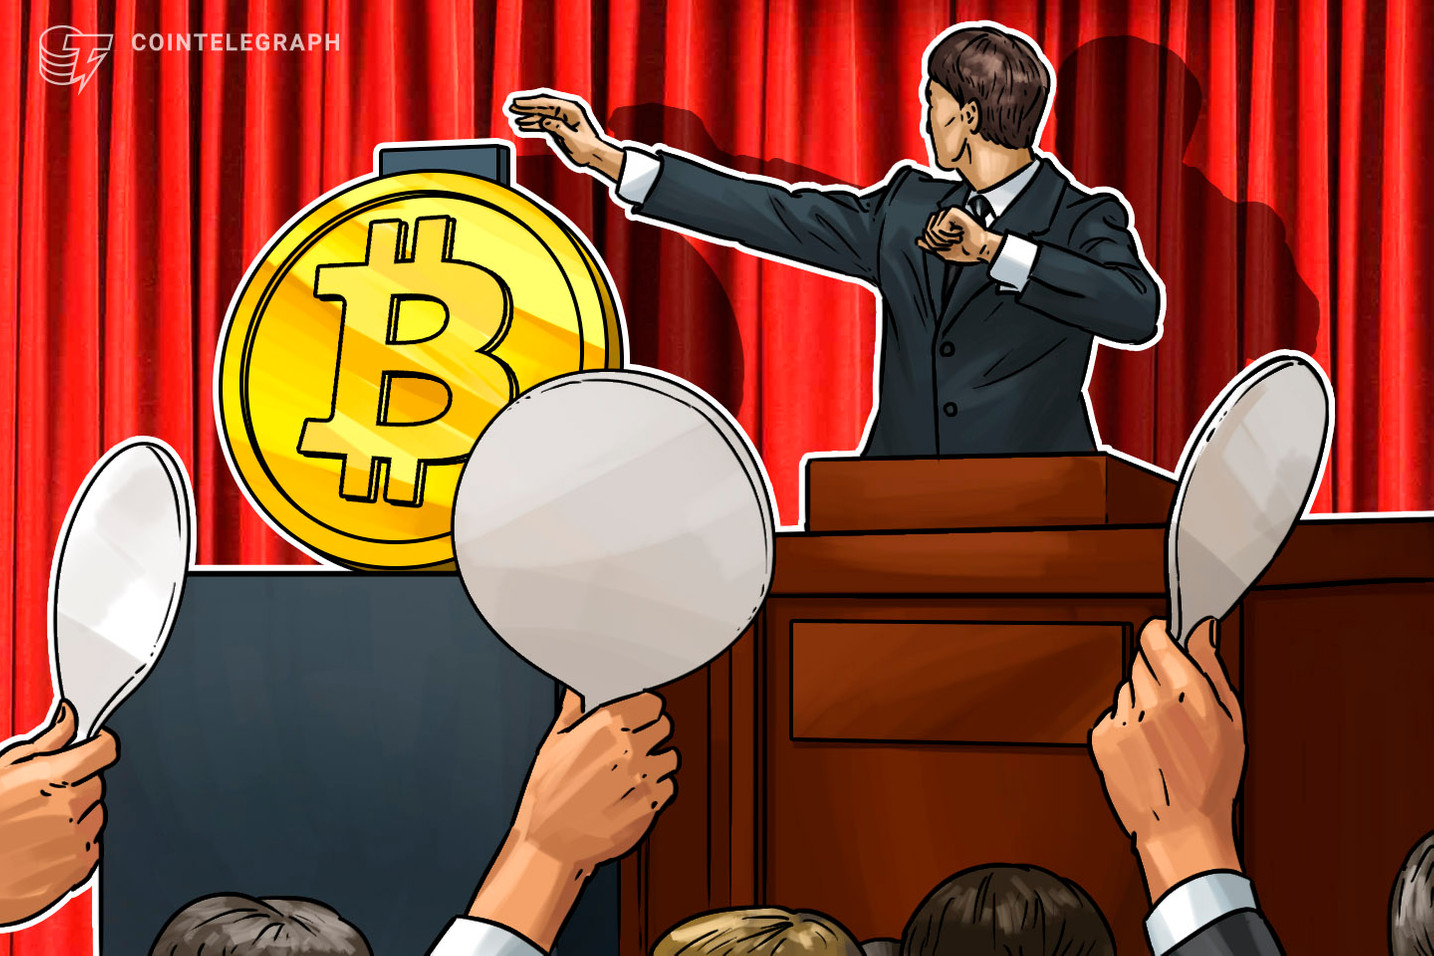 British Police to Auction Off $600,000 in Confiscated Bitcoin Today